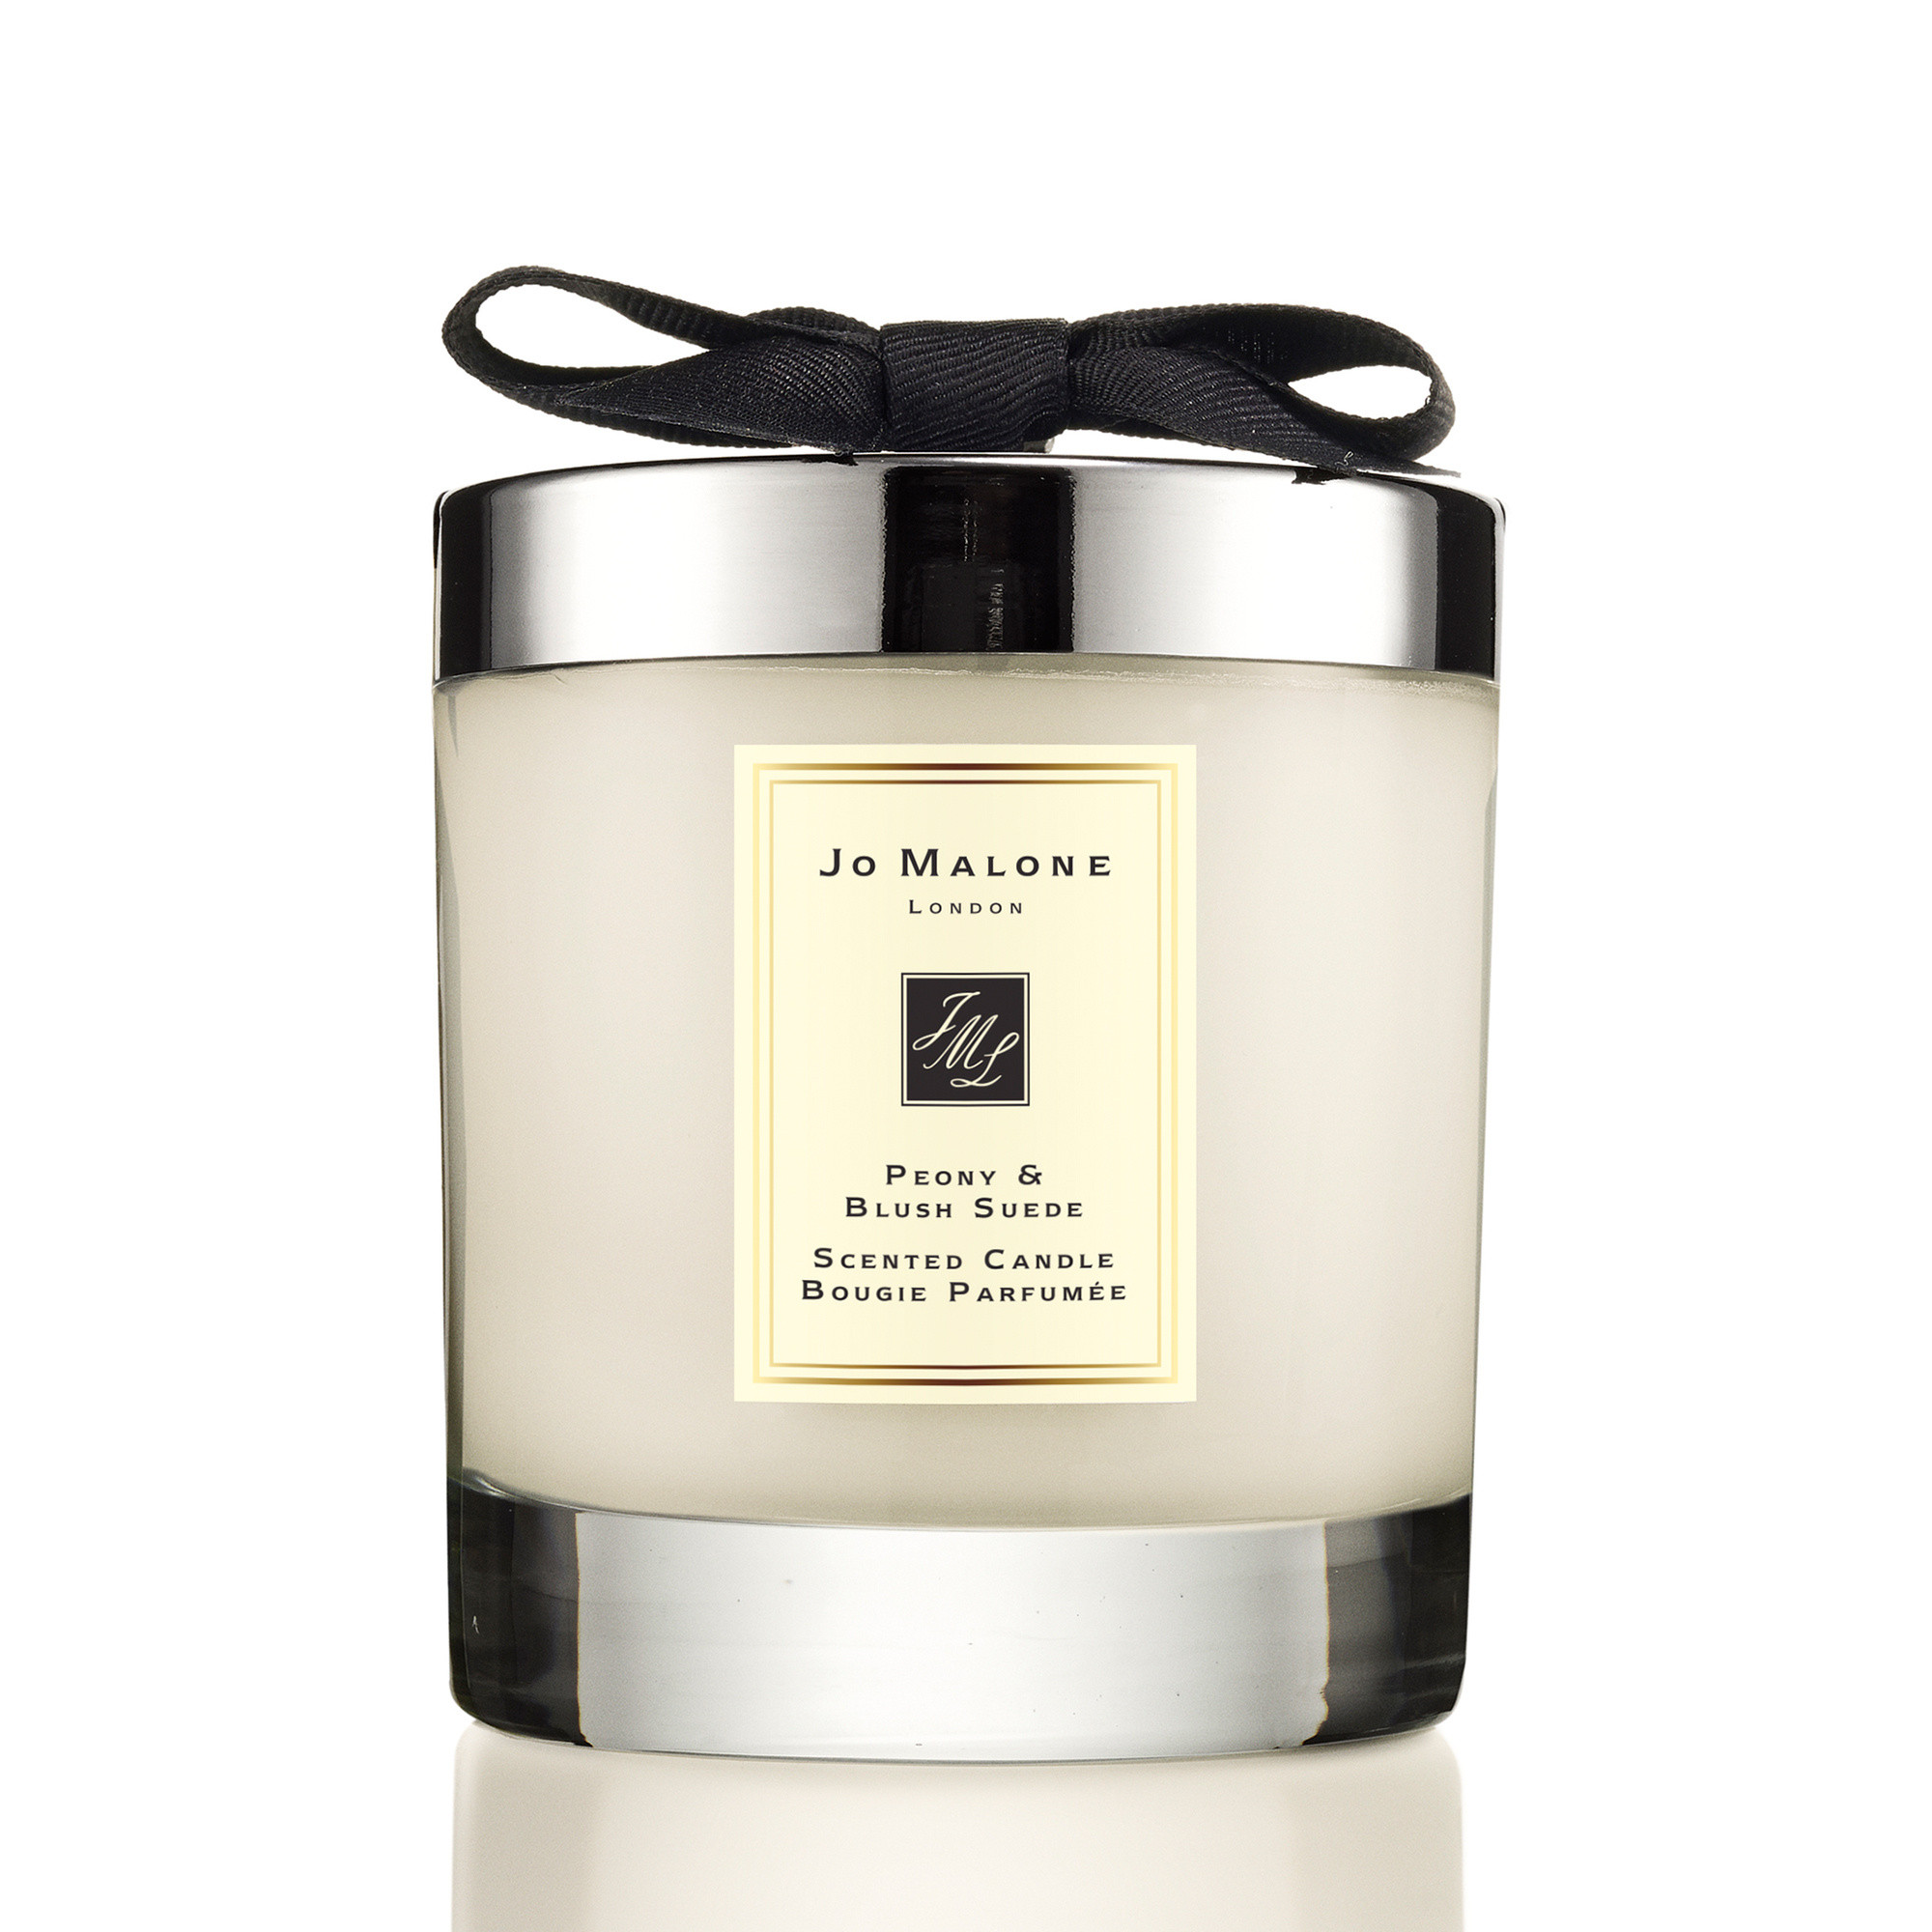 Jo Malone London peony & blush suede home candle 200 g, Nero, large image number 0